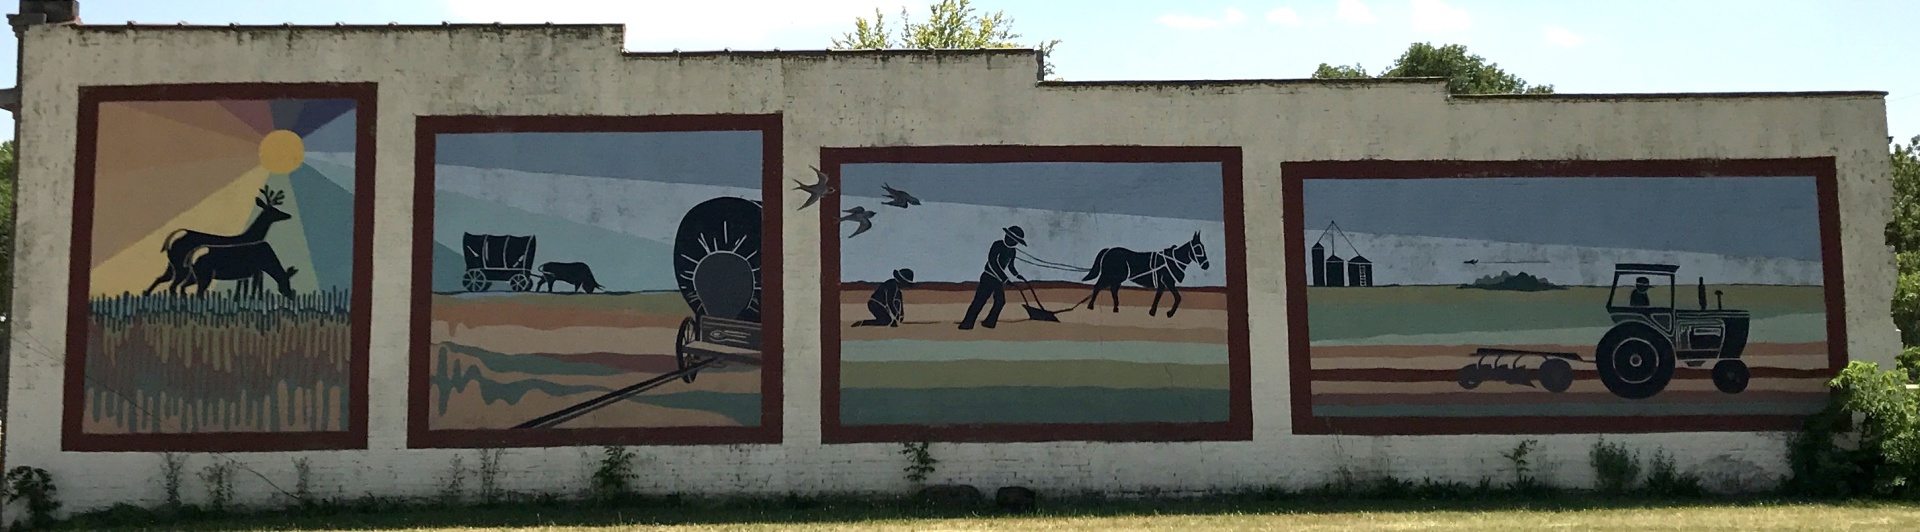 Franklin Township Building Mural